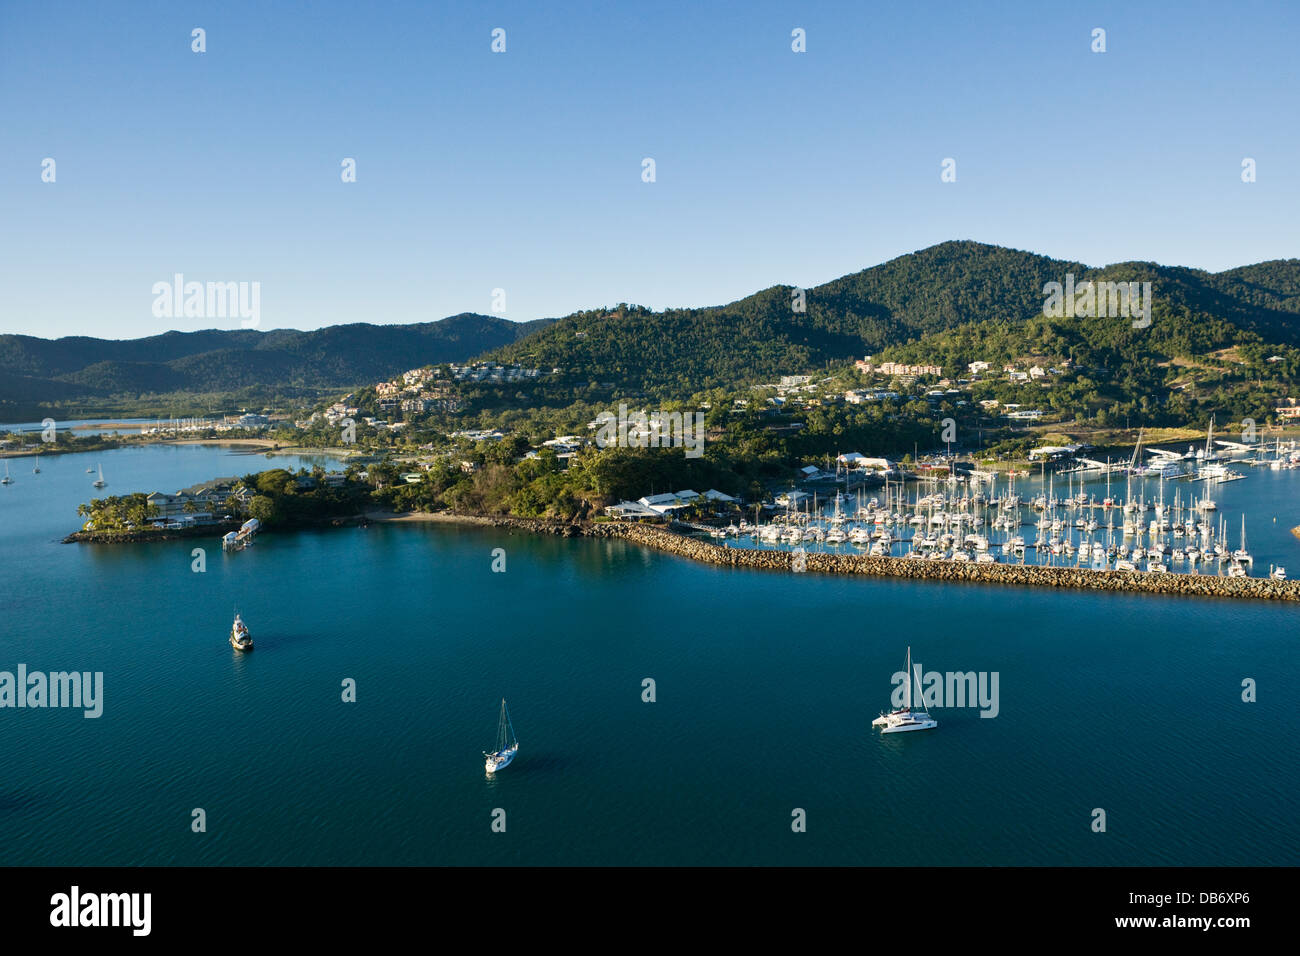 Luftbild von Abel Point Marina und Township von Airlie Beach, Whitsundays, Queensland, Australien Stockfoto